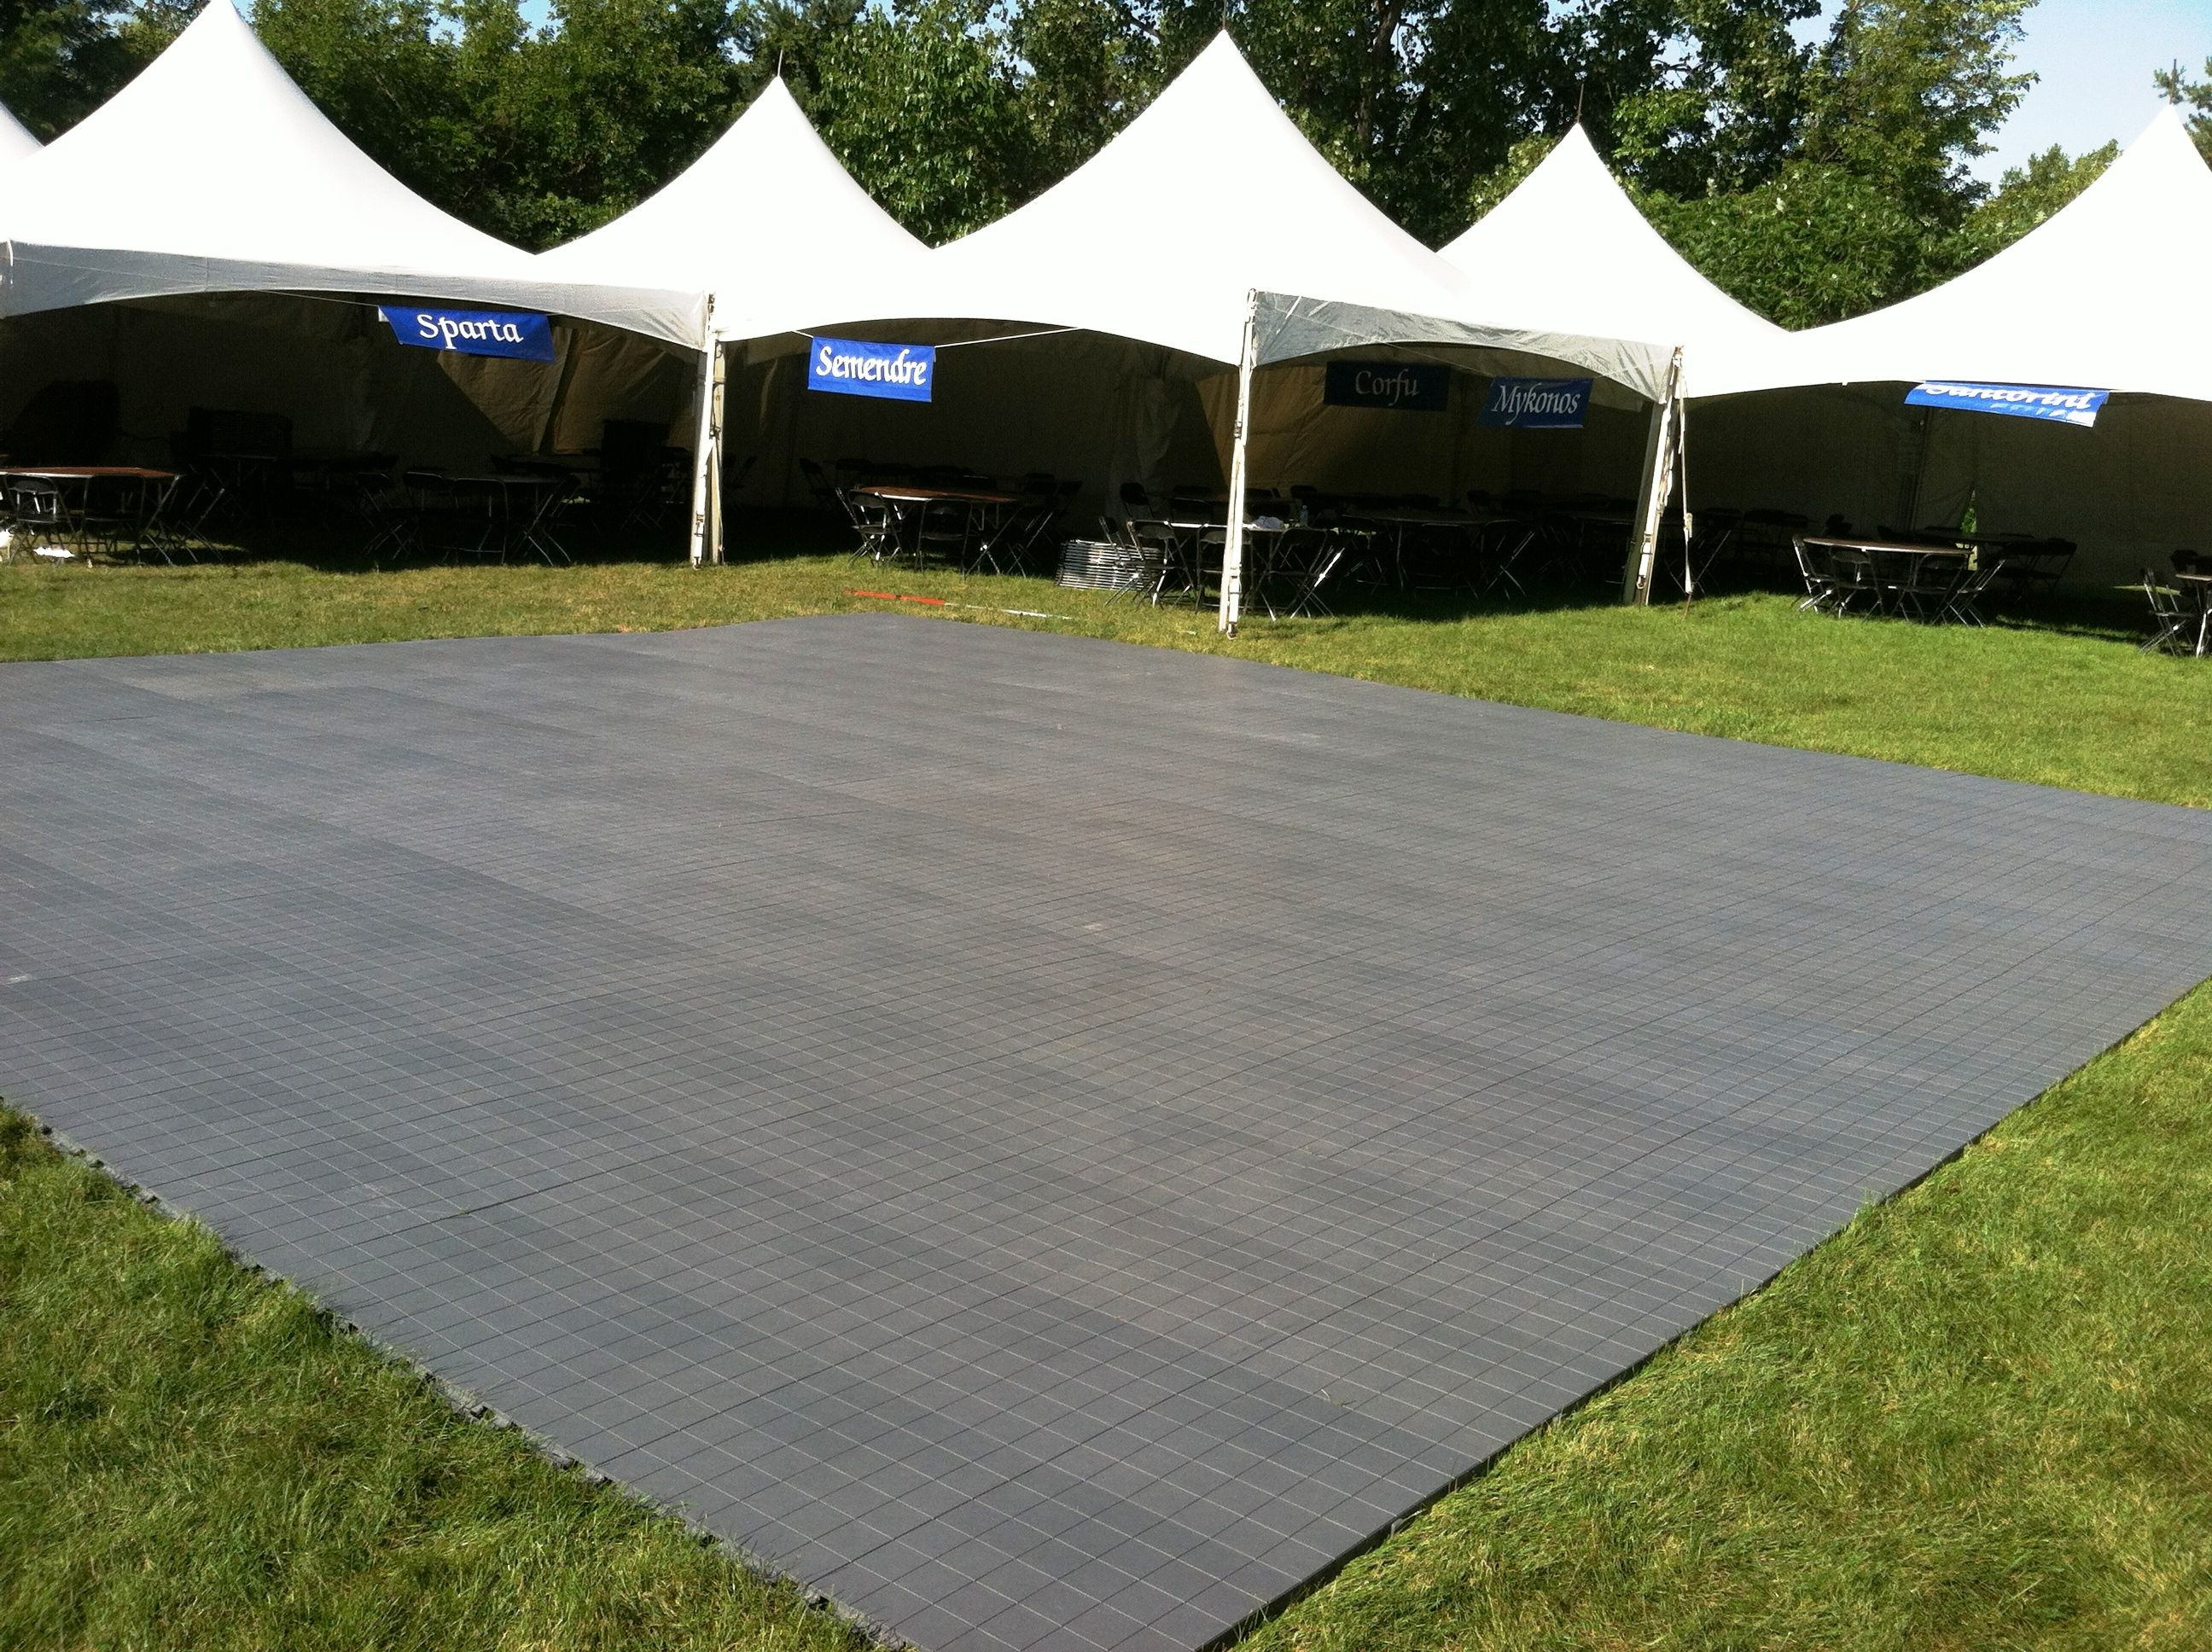 A festival with 12 festival frame tents and event flooring